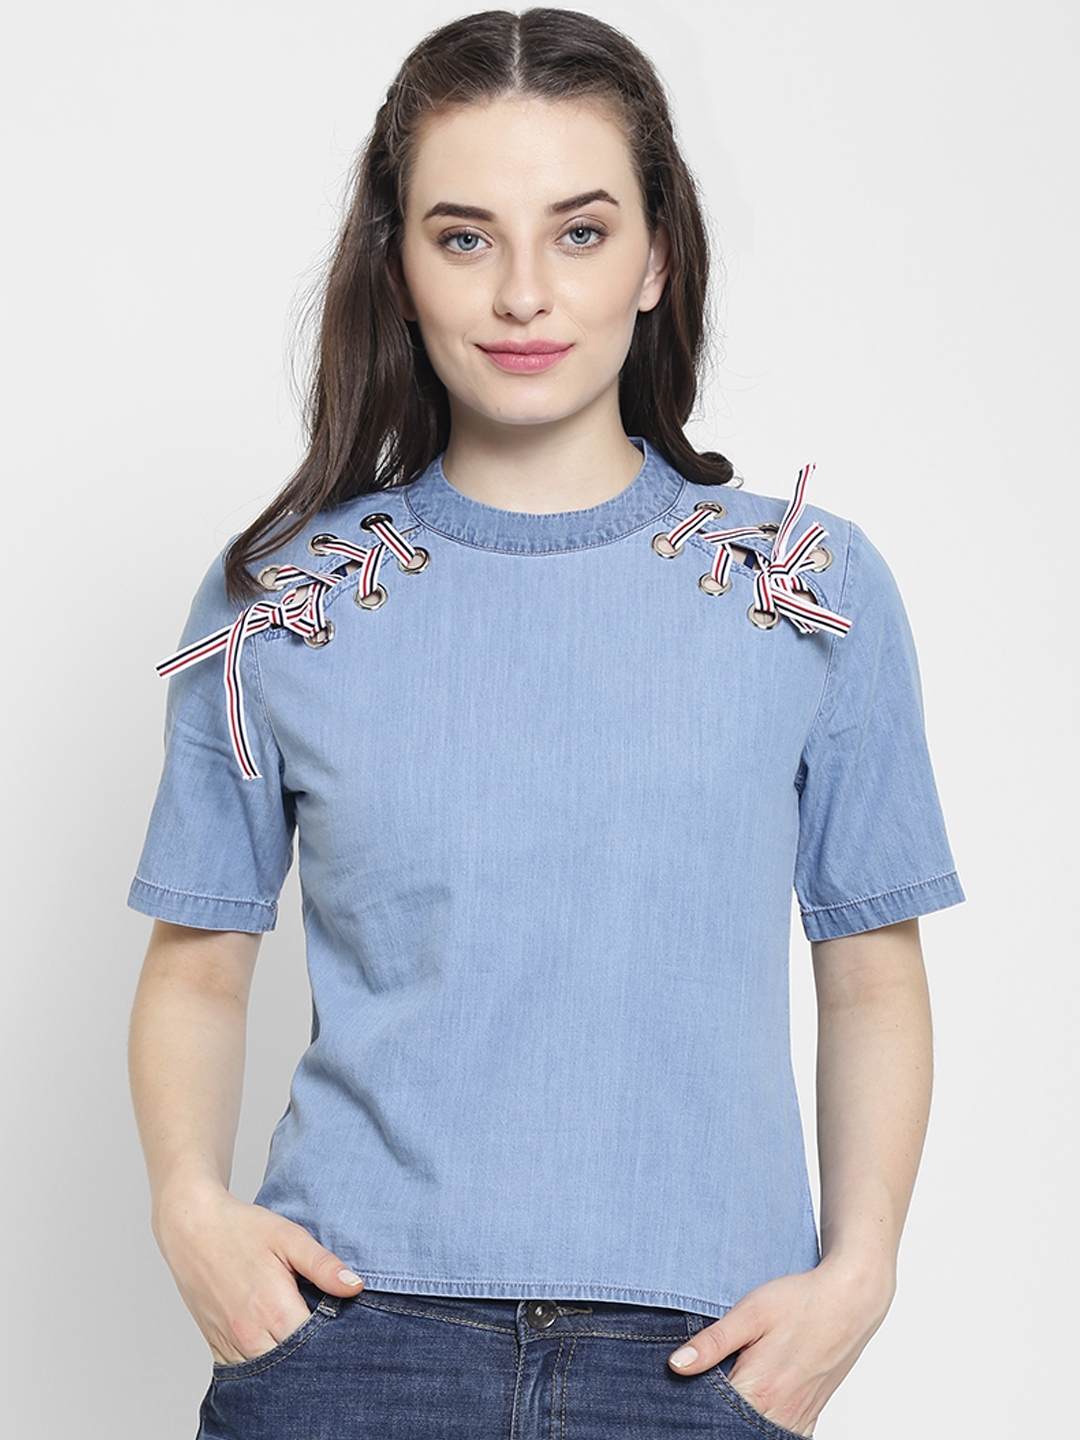 15cddceadd8 Buy Madame Women Blue Solid Chambray Top - Tops for Women 7119264 ...